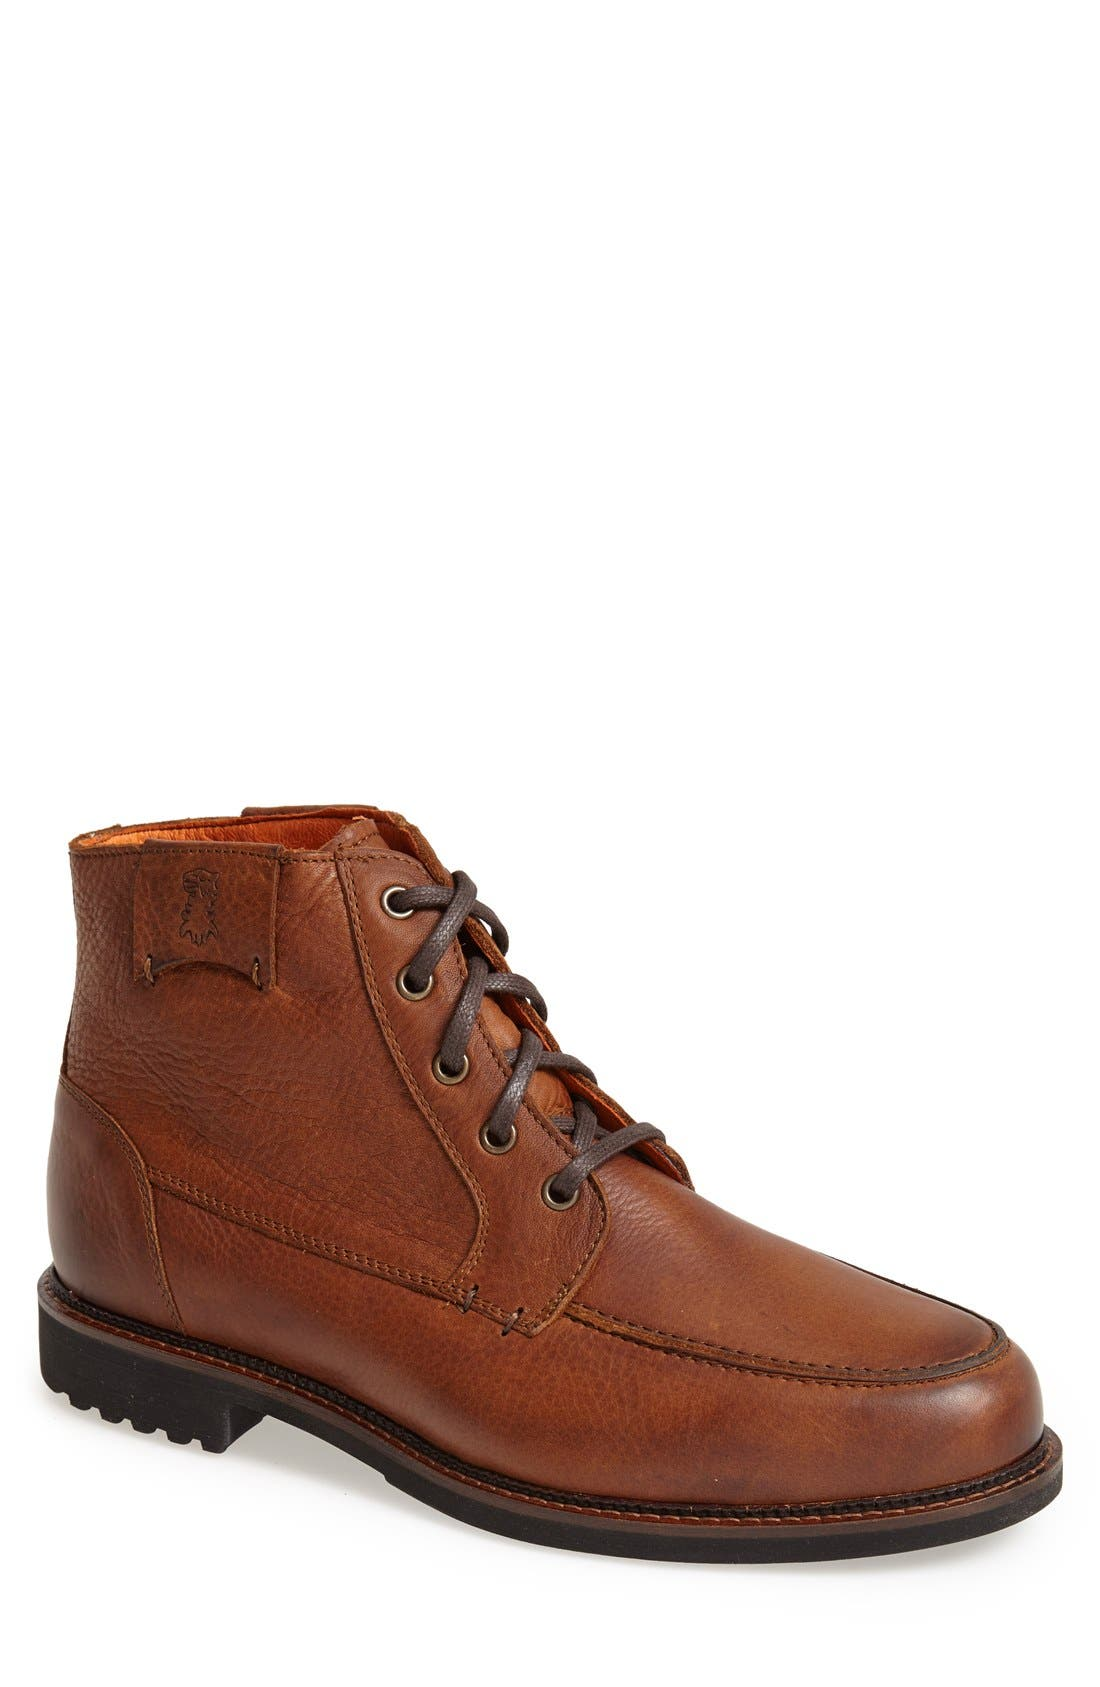 'Alpine' Moc Toe Boot,                         Main,                         color, WORN SADDLE